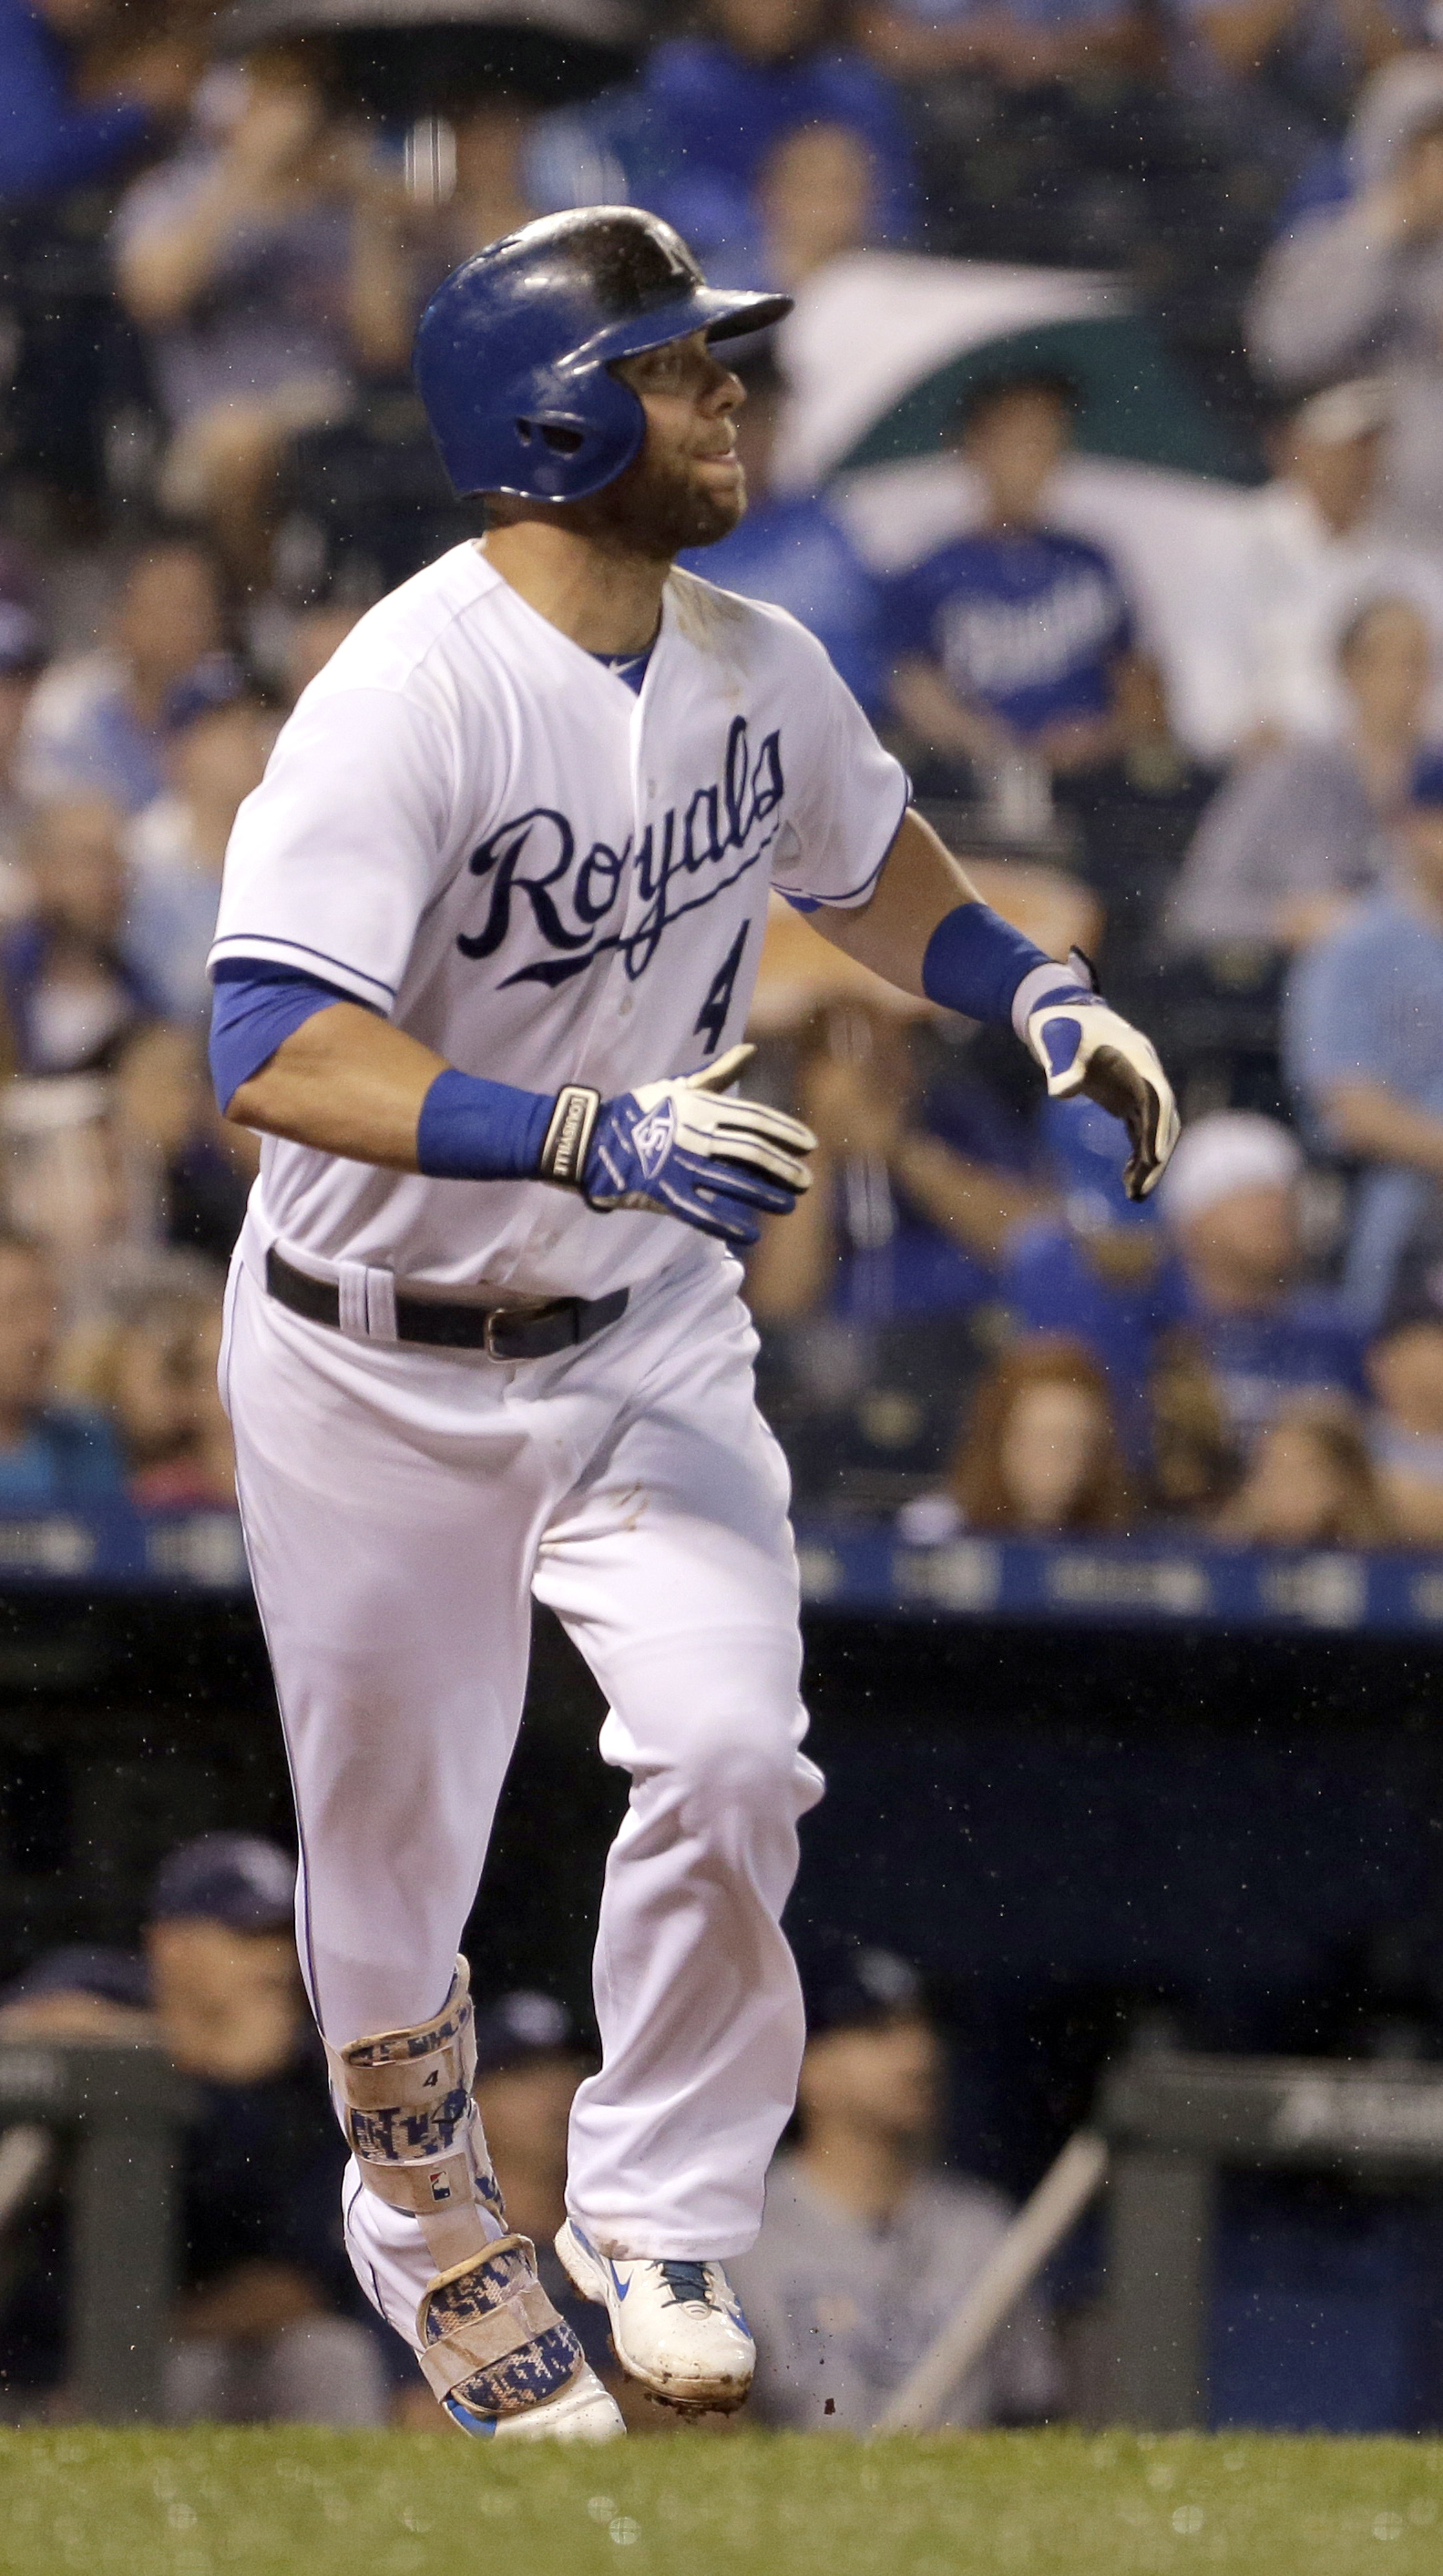 Kansas City Royals' Alex Gordon watches his hit during the fifth inning of the second game in a baseball doubleheader against the Tampa Bay Rays Tuesday, July 7, 2015, in Kansas City, Mo. (AP Photo/Charlie Riedel)